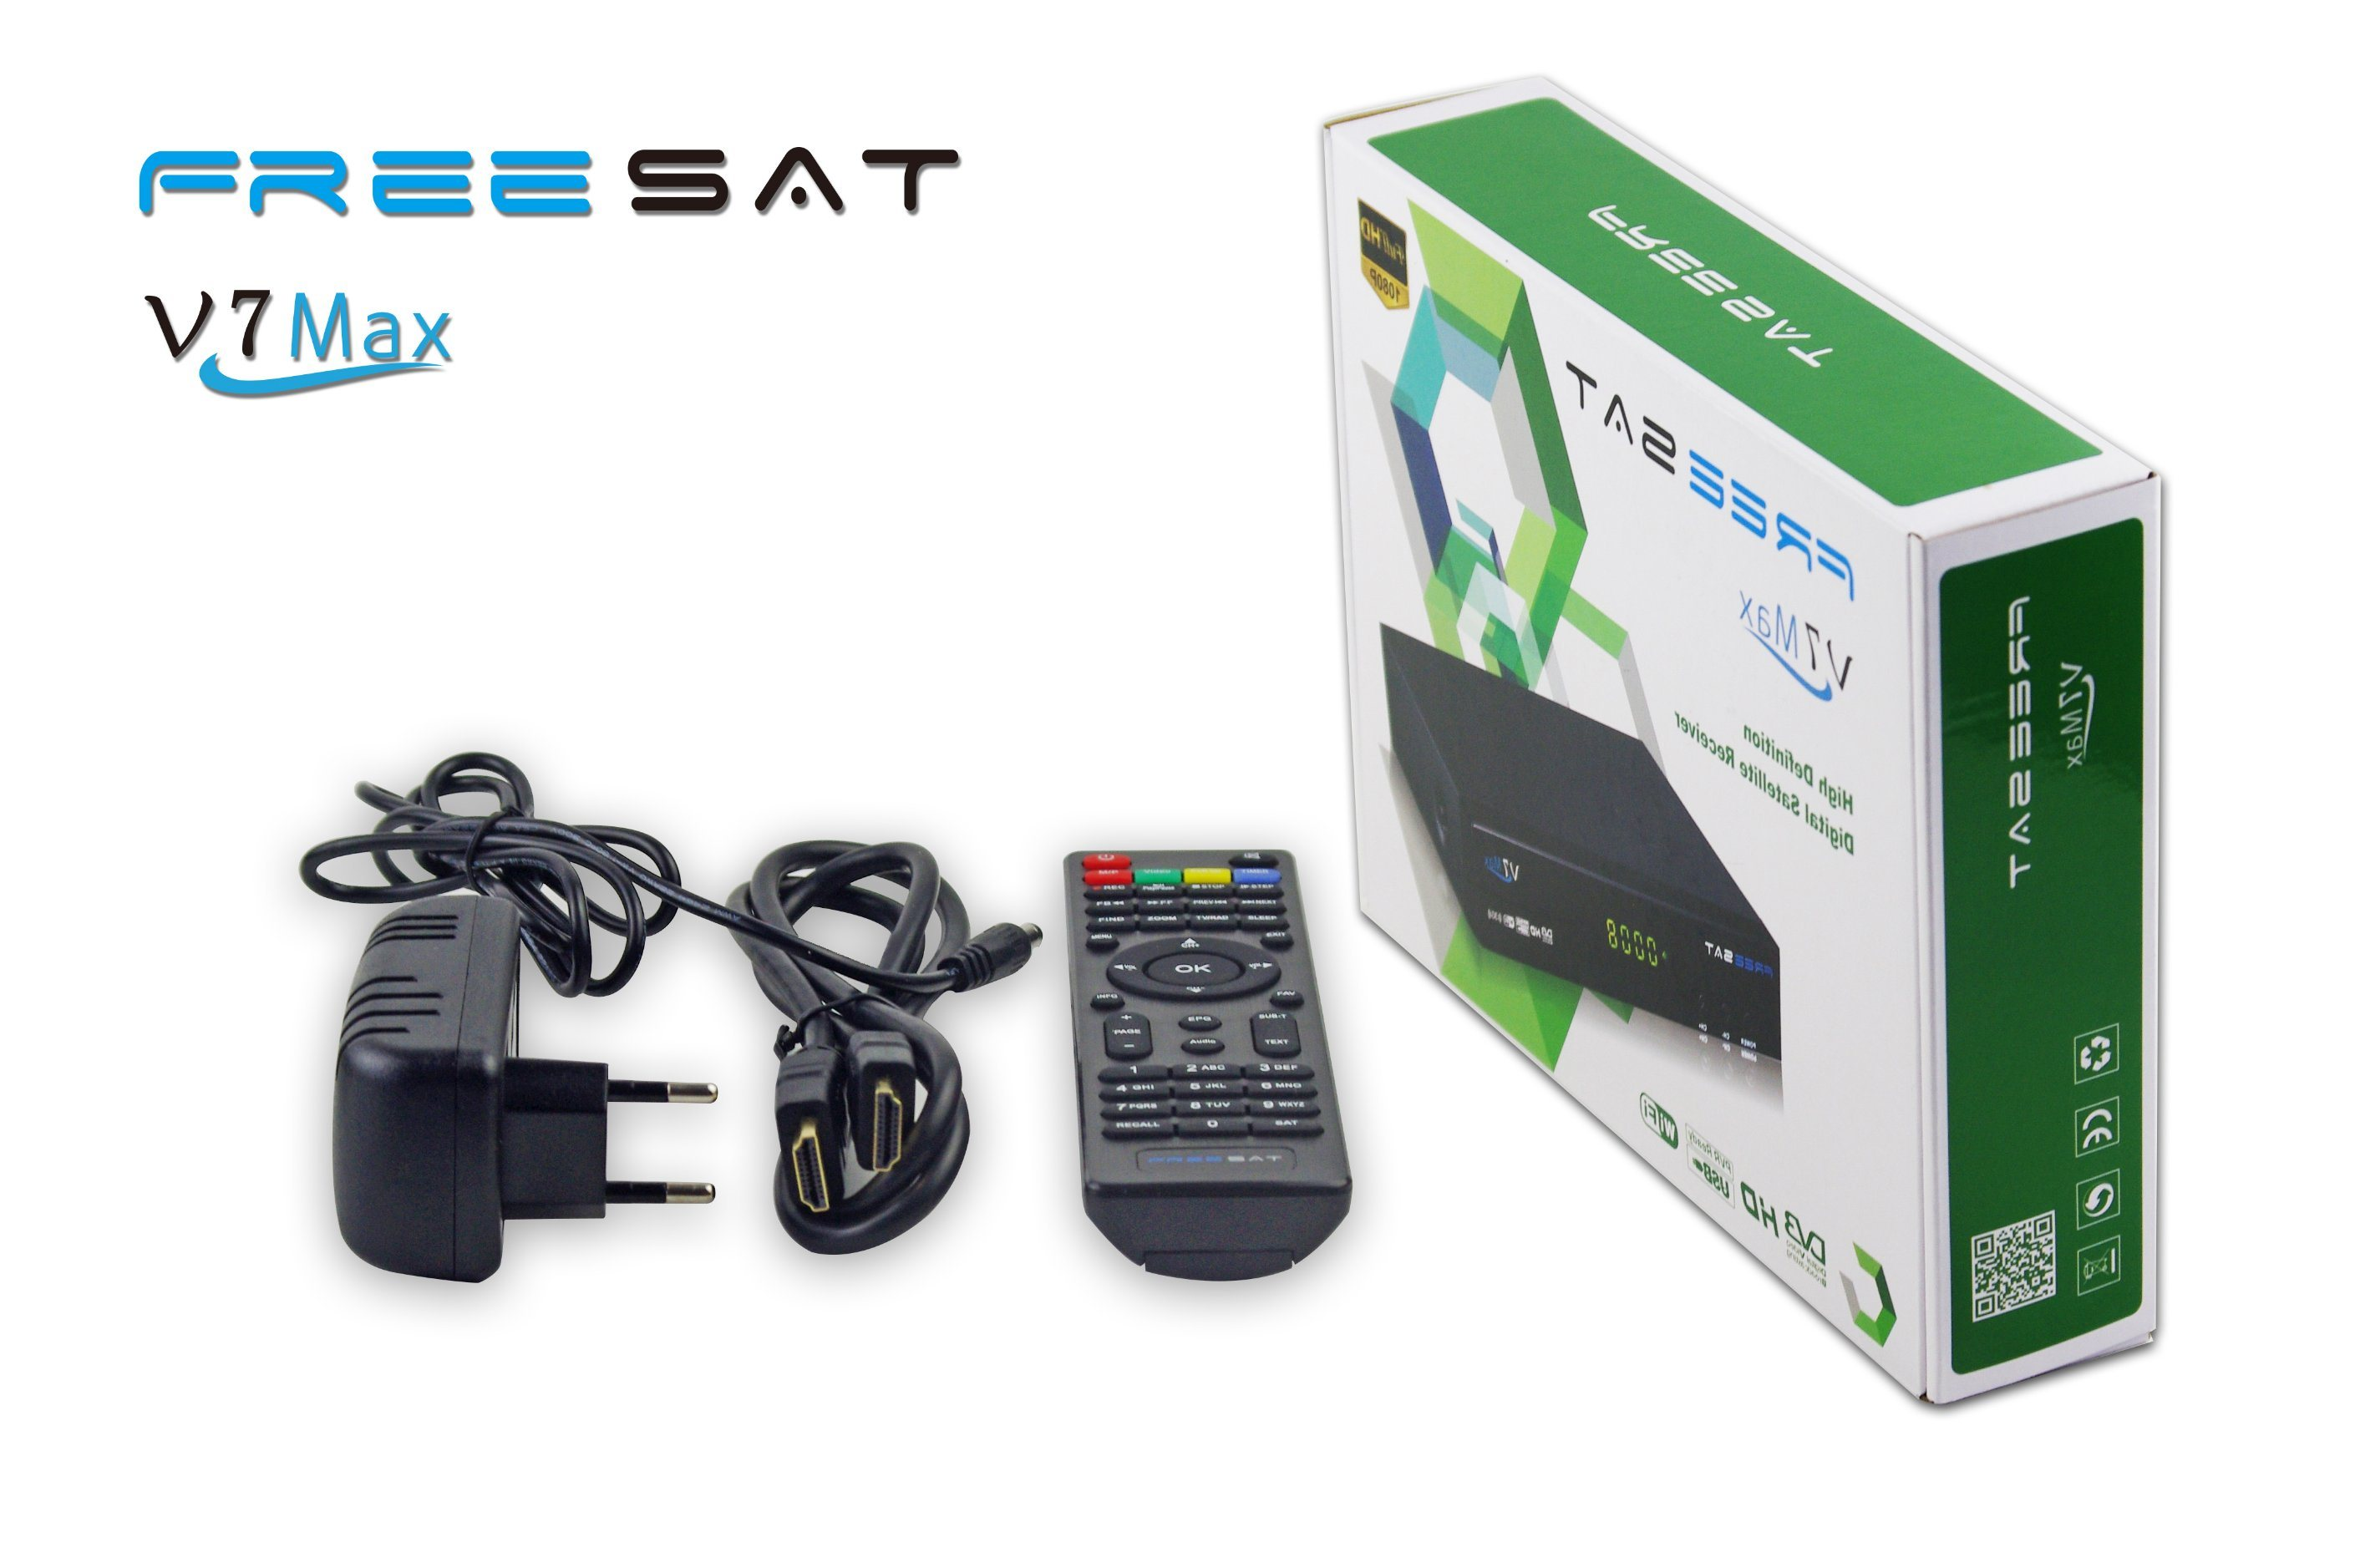 Freesat V7 Max DVB-S2 Full HD Digital Satellite Receiver